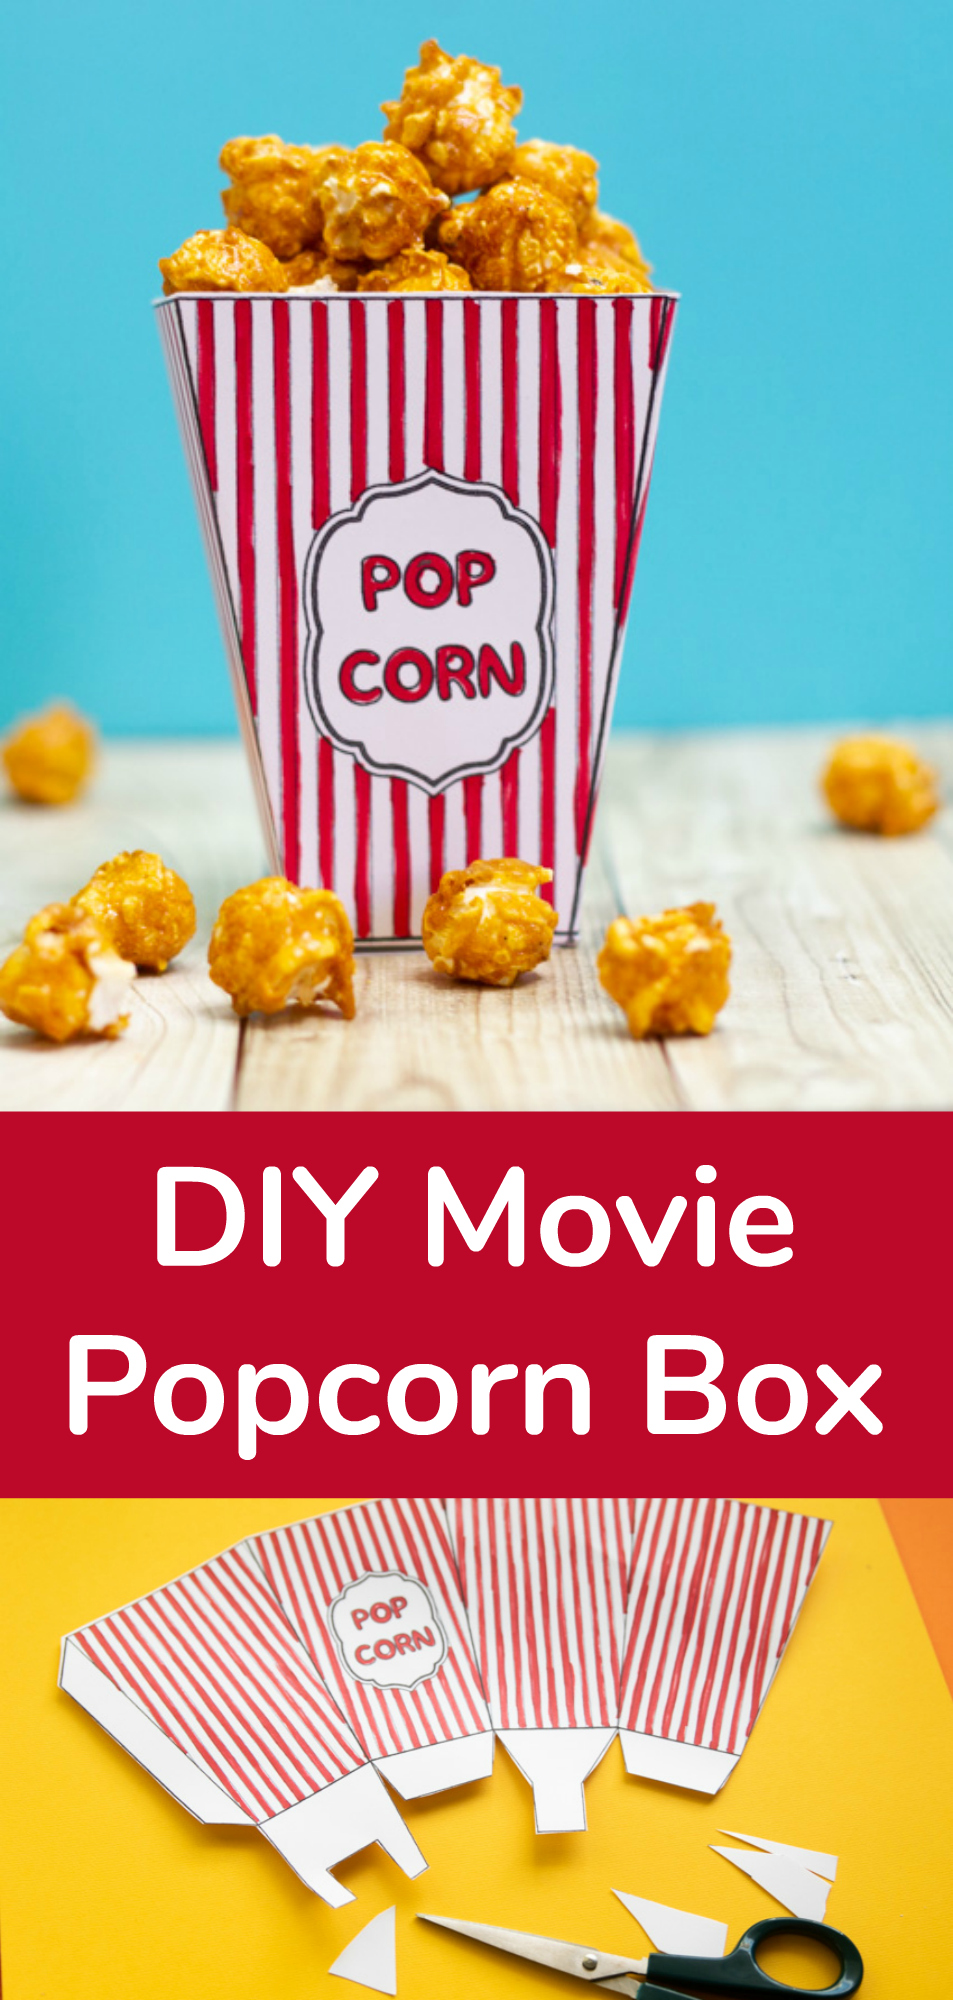 DIY Movie Popcorn Box + Free Printable